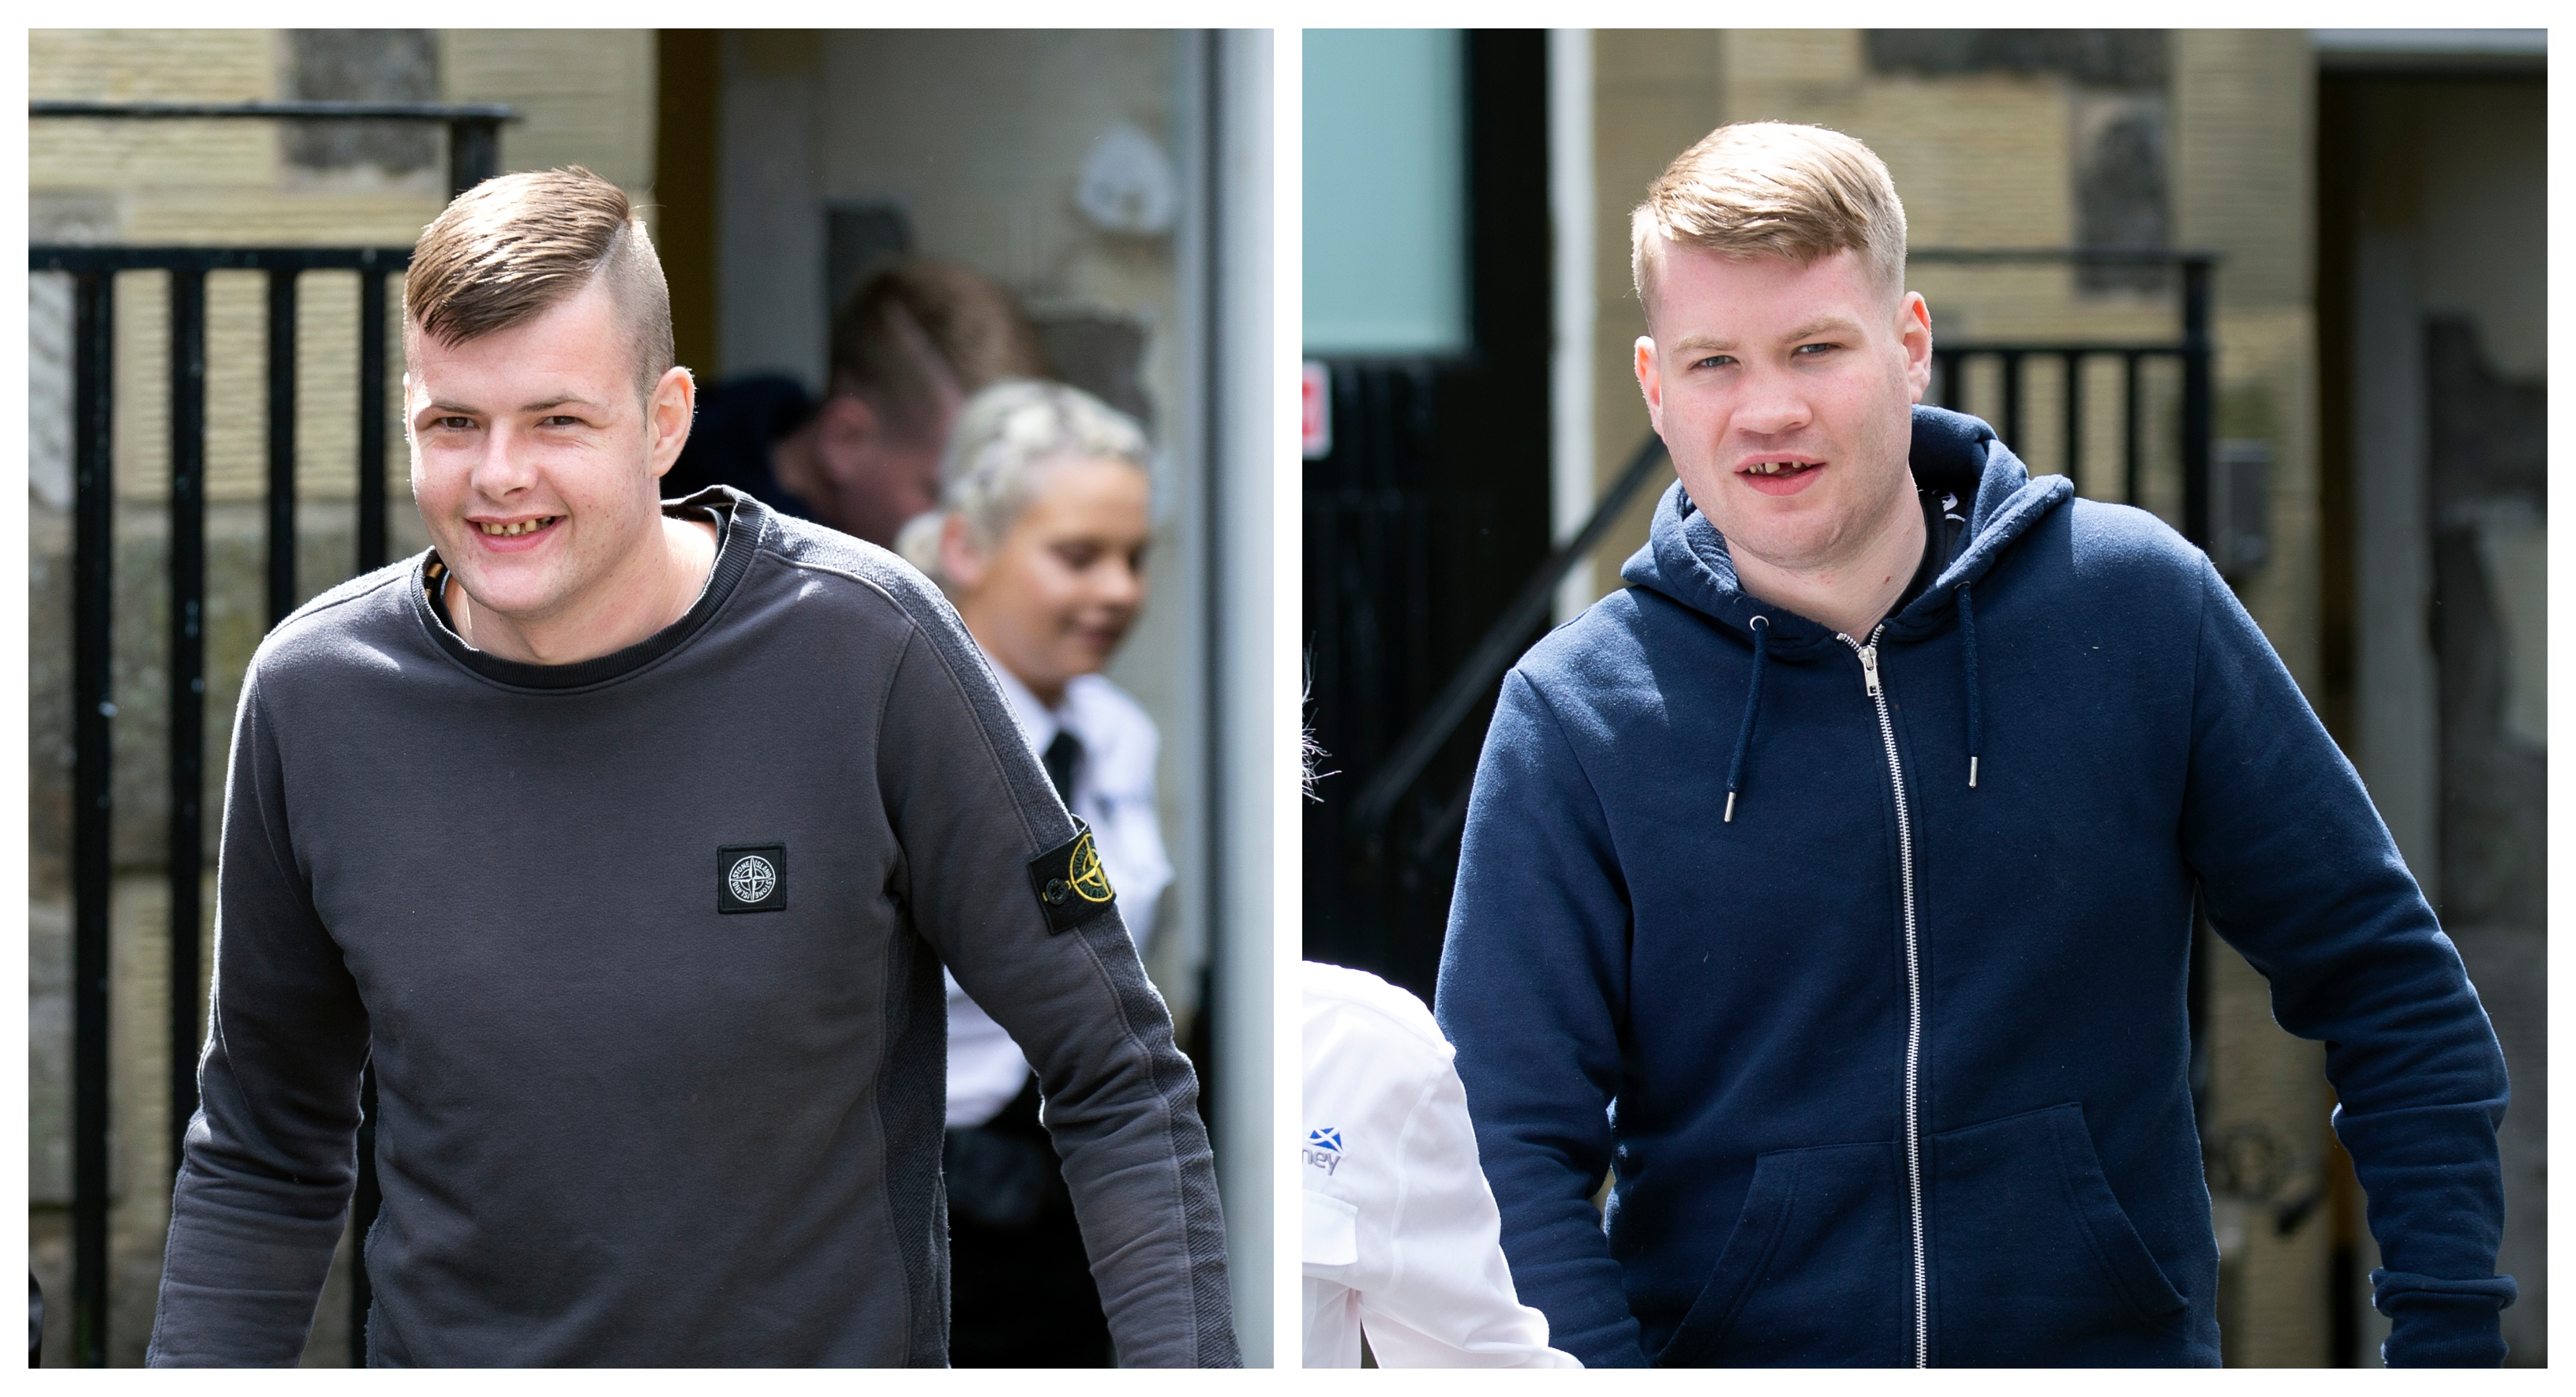 Liam Macdonald (L) is led from court after being jailed robbery offences with co-accused Shaun McLeod (R).